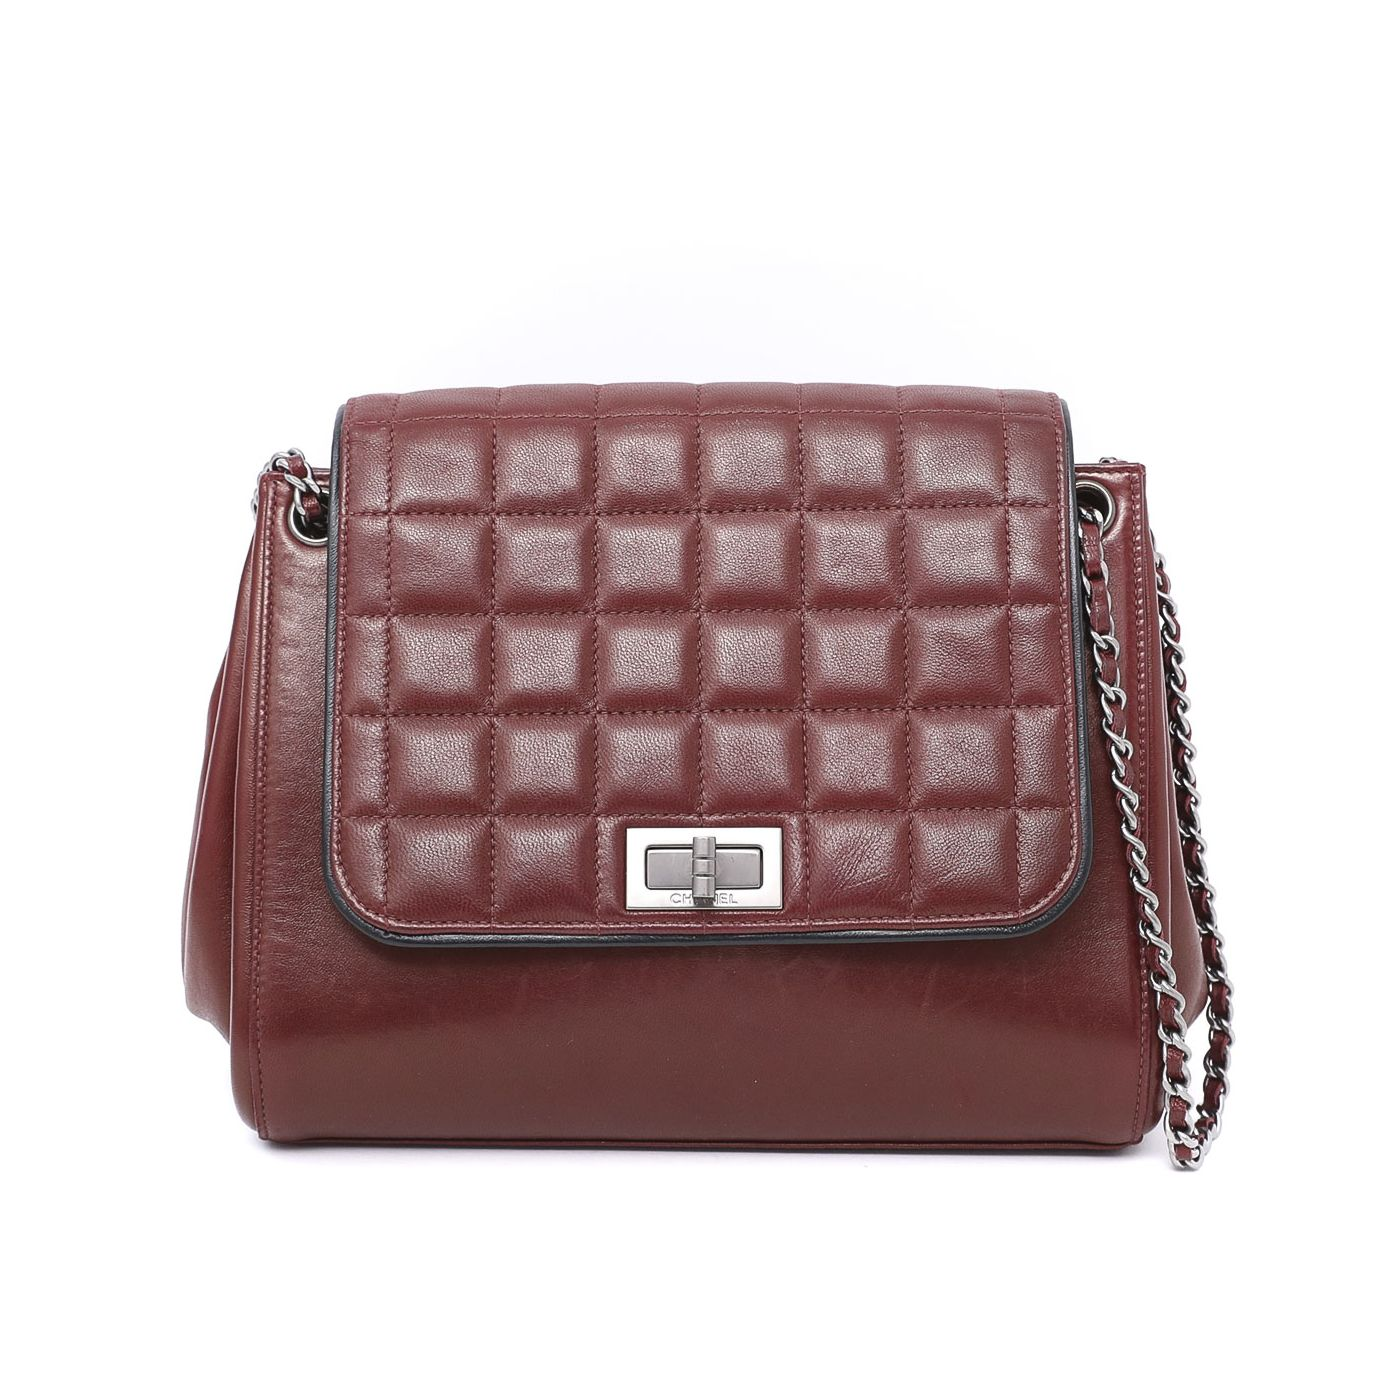 Chanel Dark Red Chocolate Bar Accordion Reissue Bag